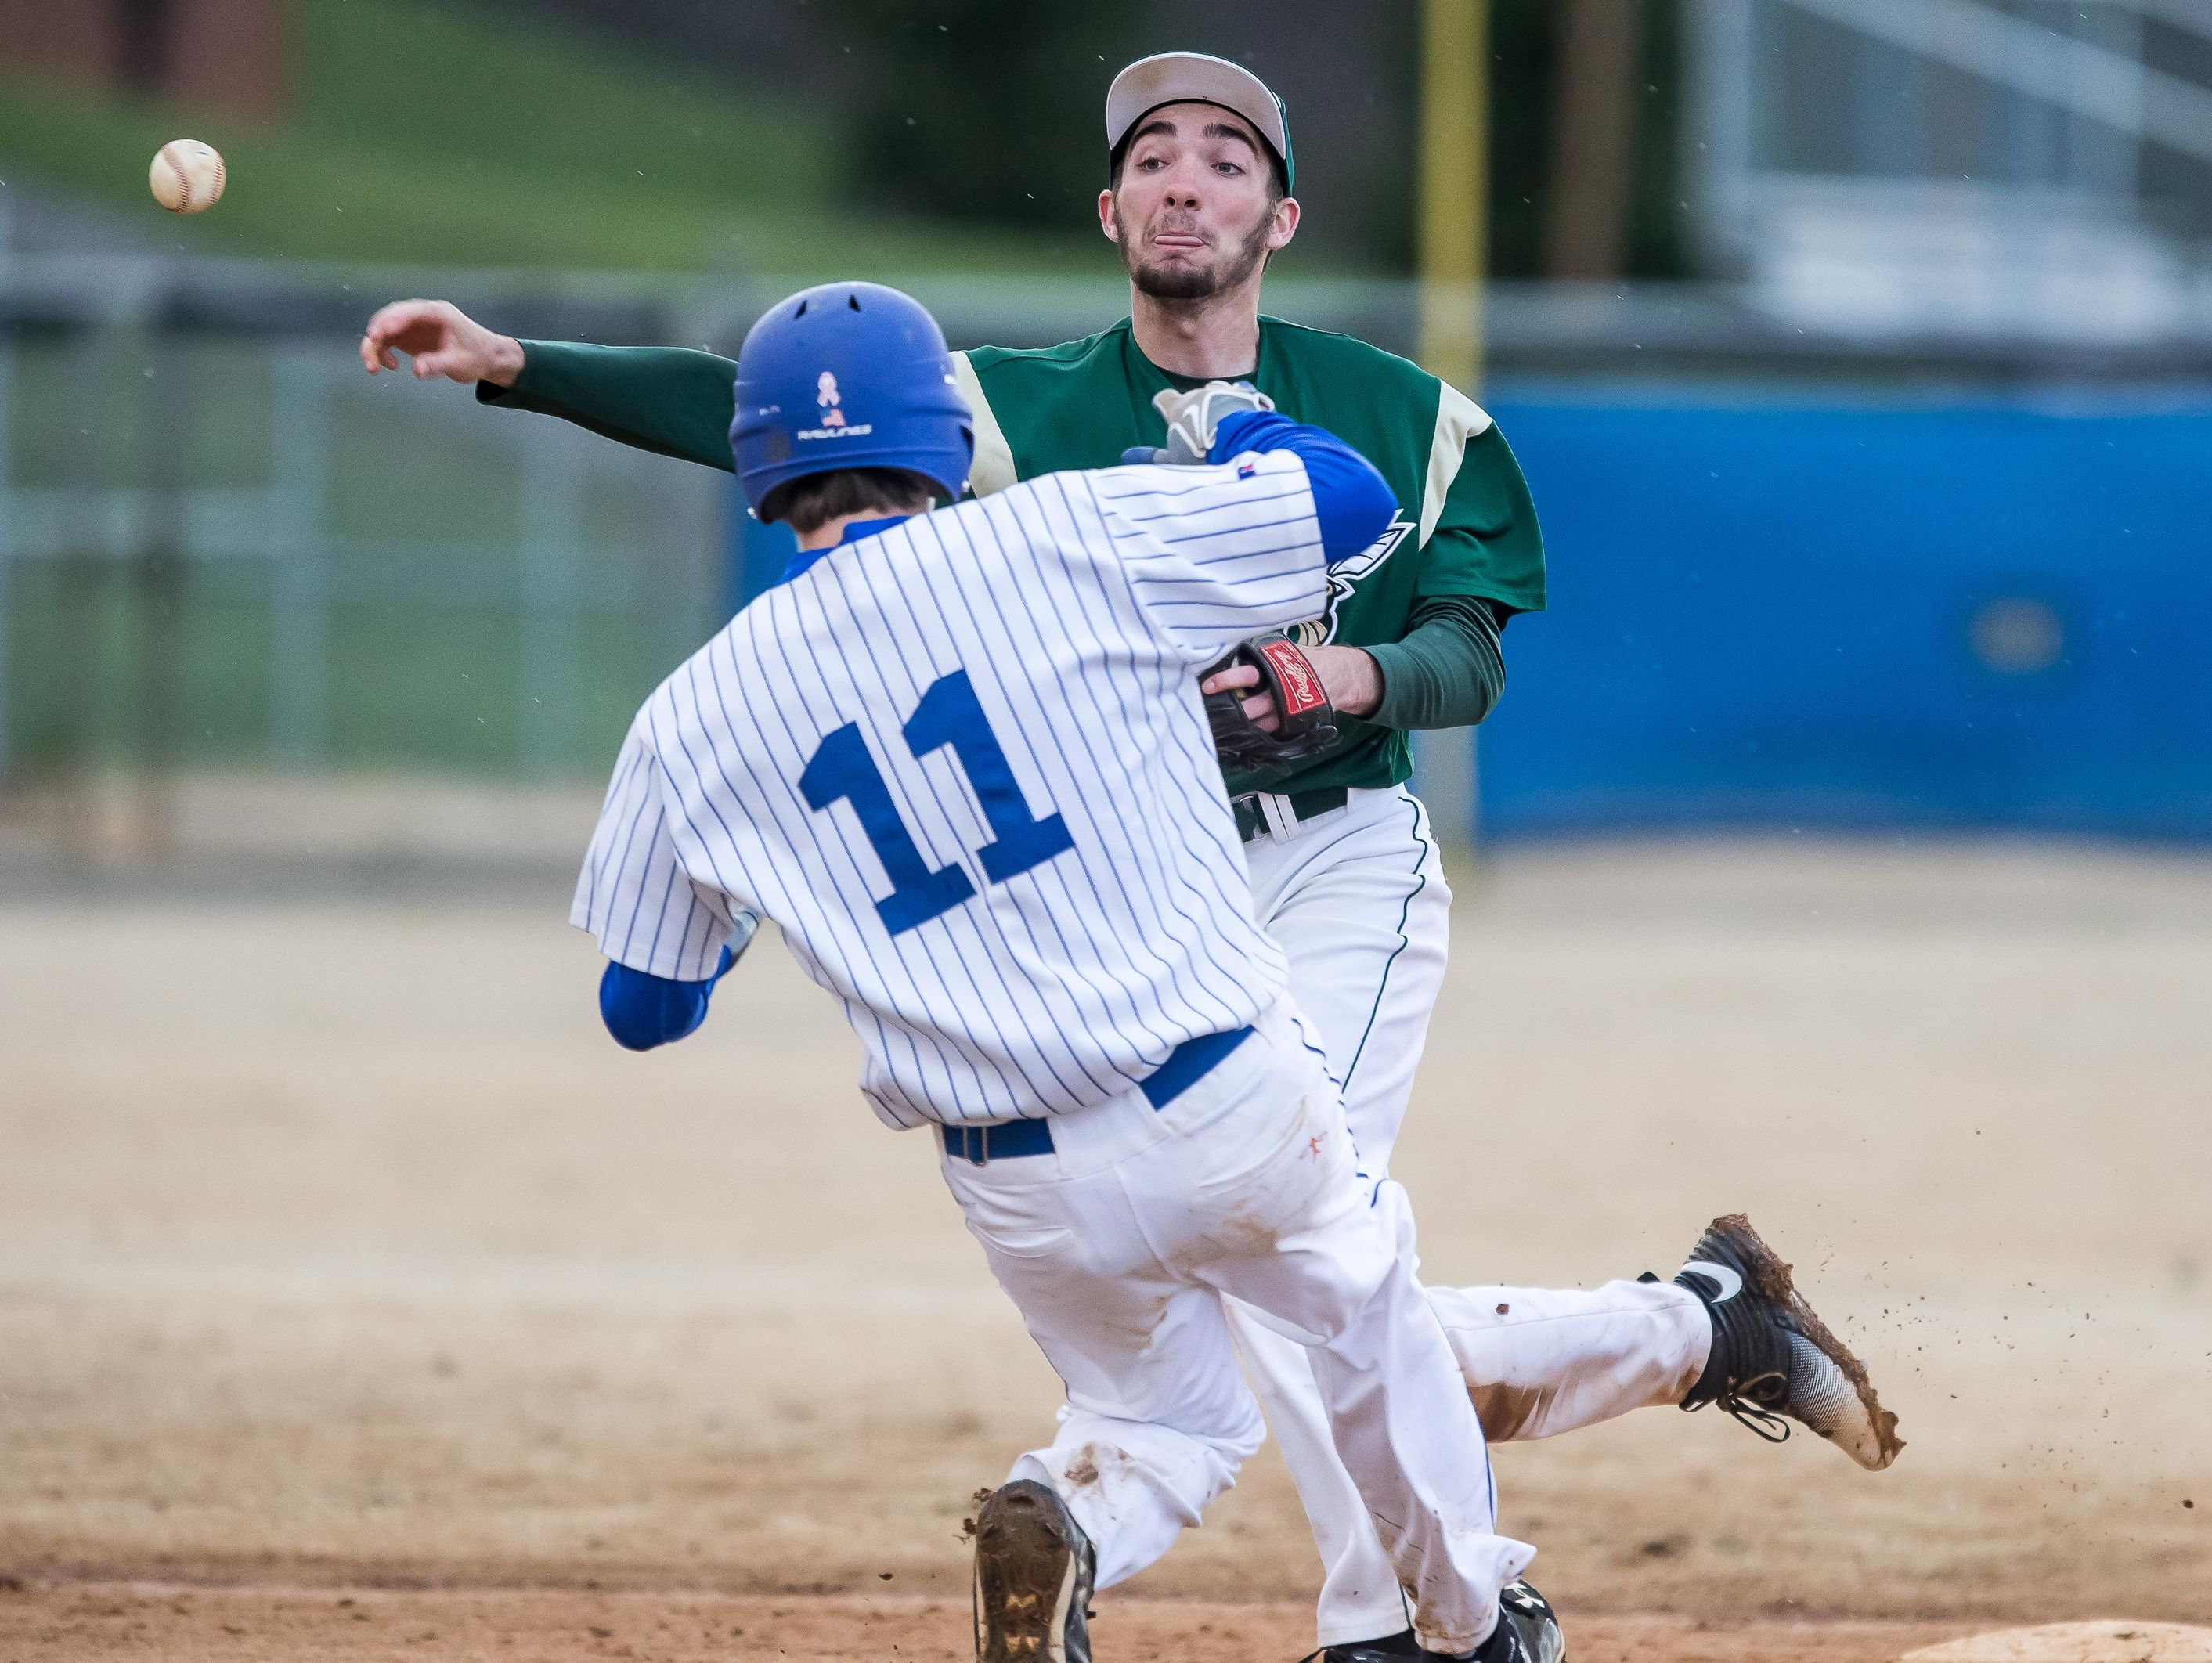 Wilson Memorial shortstop Wayne Pettry fires to first to complete a double play as Fort Defiance's Zach Eppard slides into second during a nonconference baseball game Thursday at Fort Defiance High School.